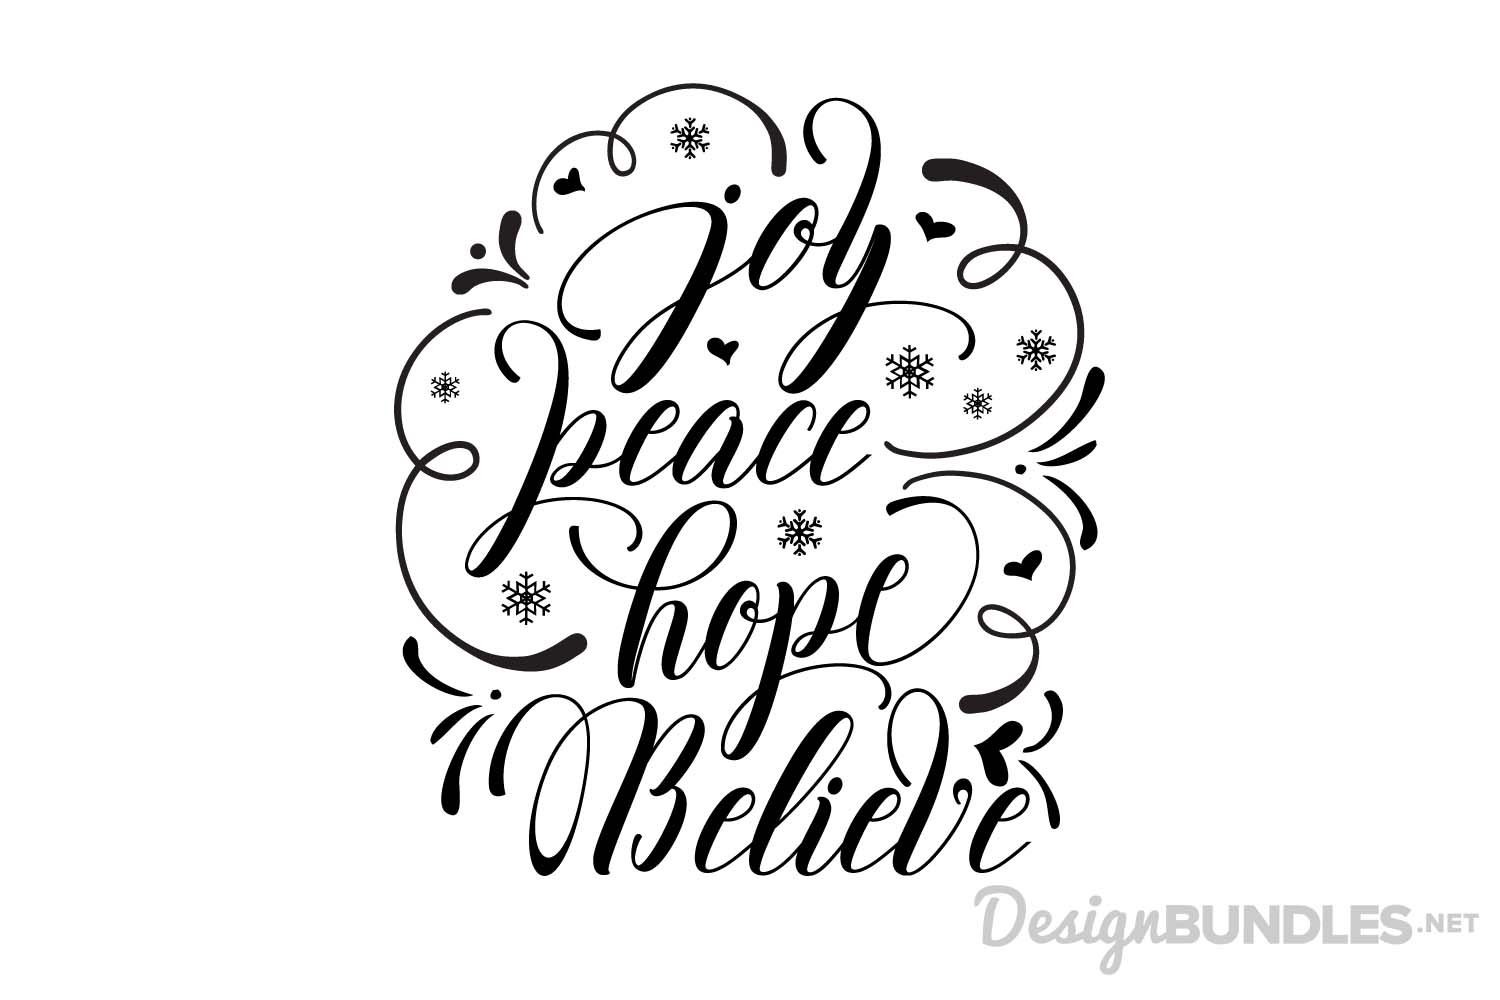 Download Free Christmas SVG. Christmas Quotes. | Free design ...